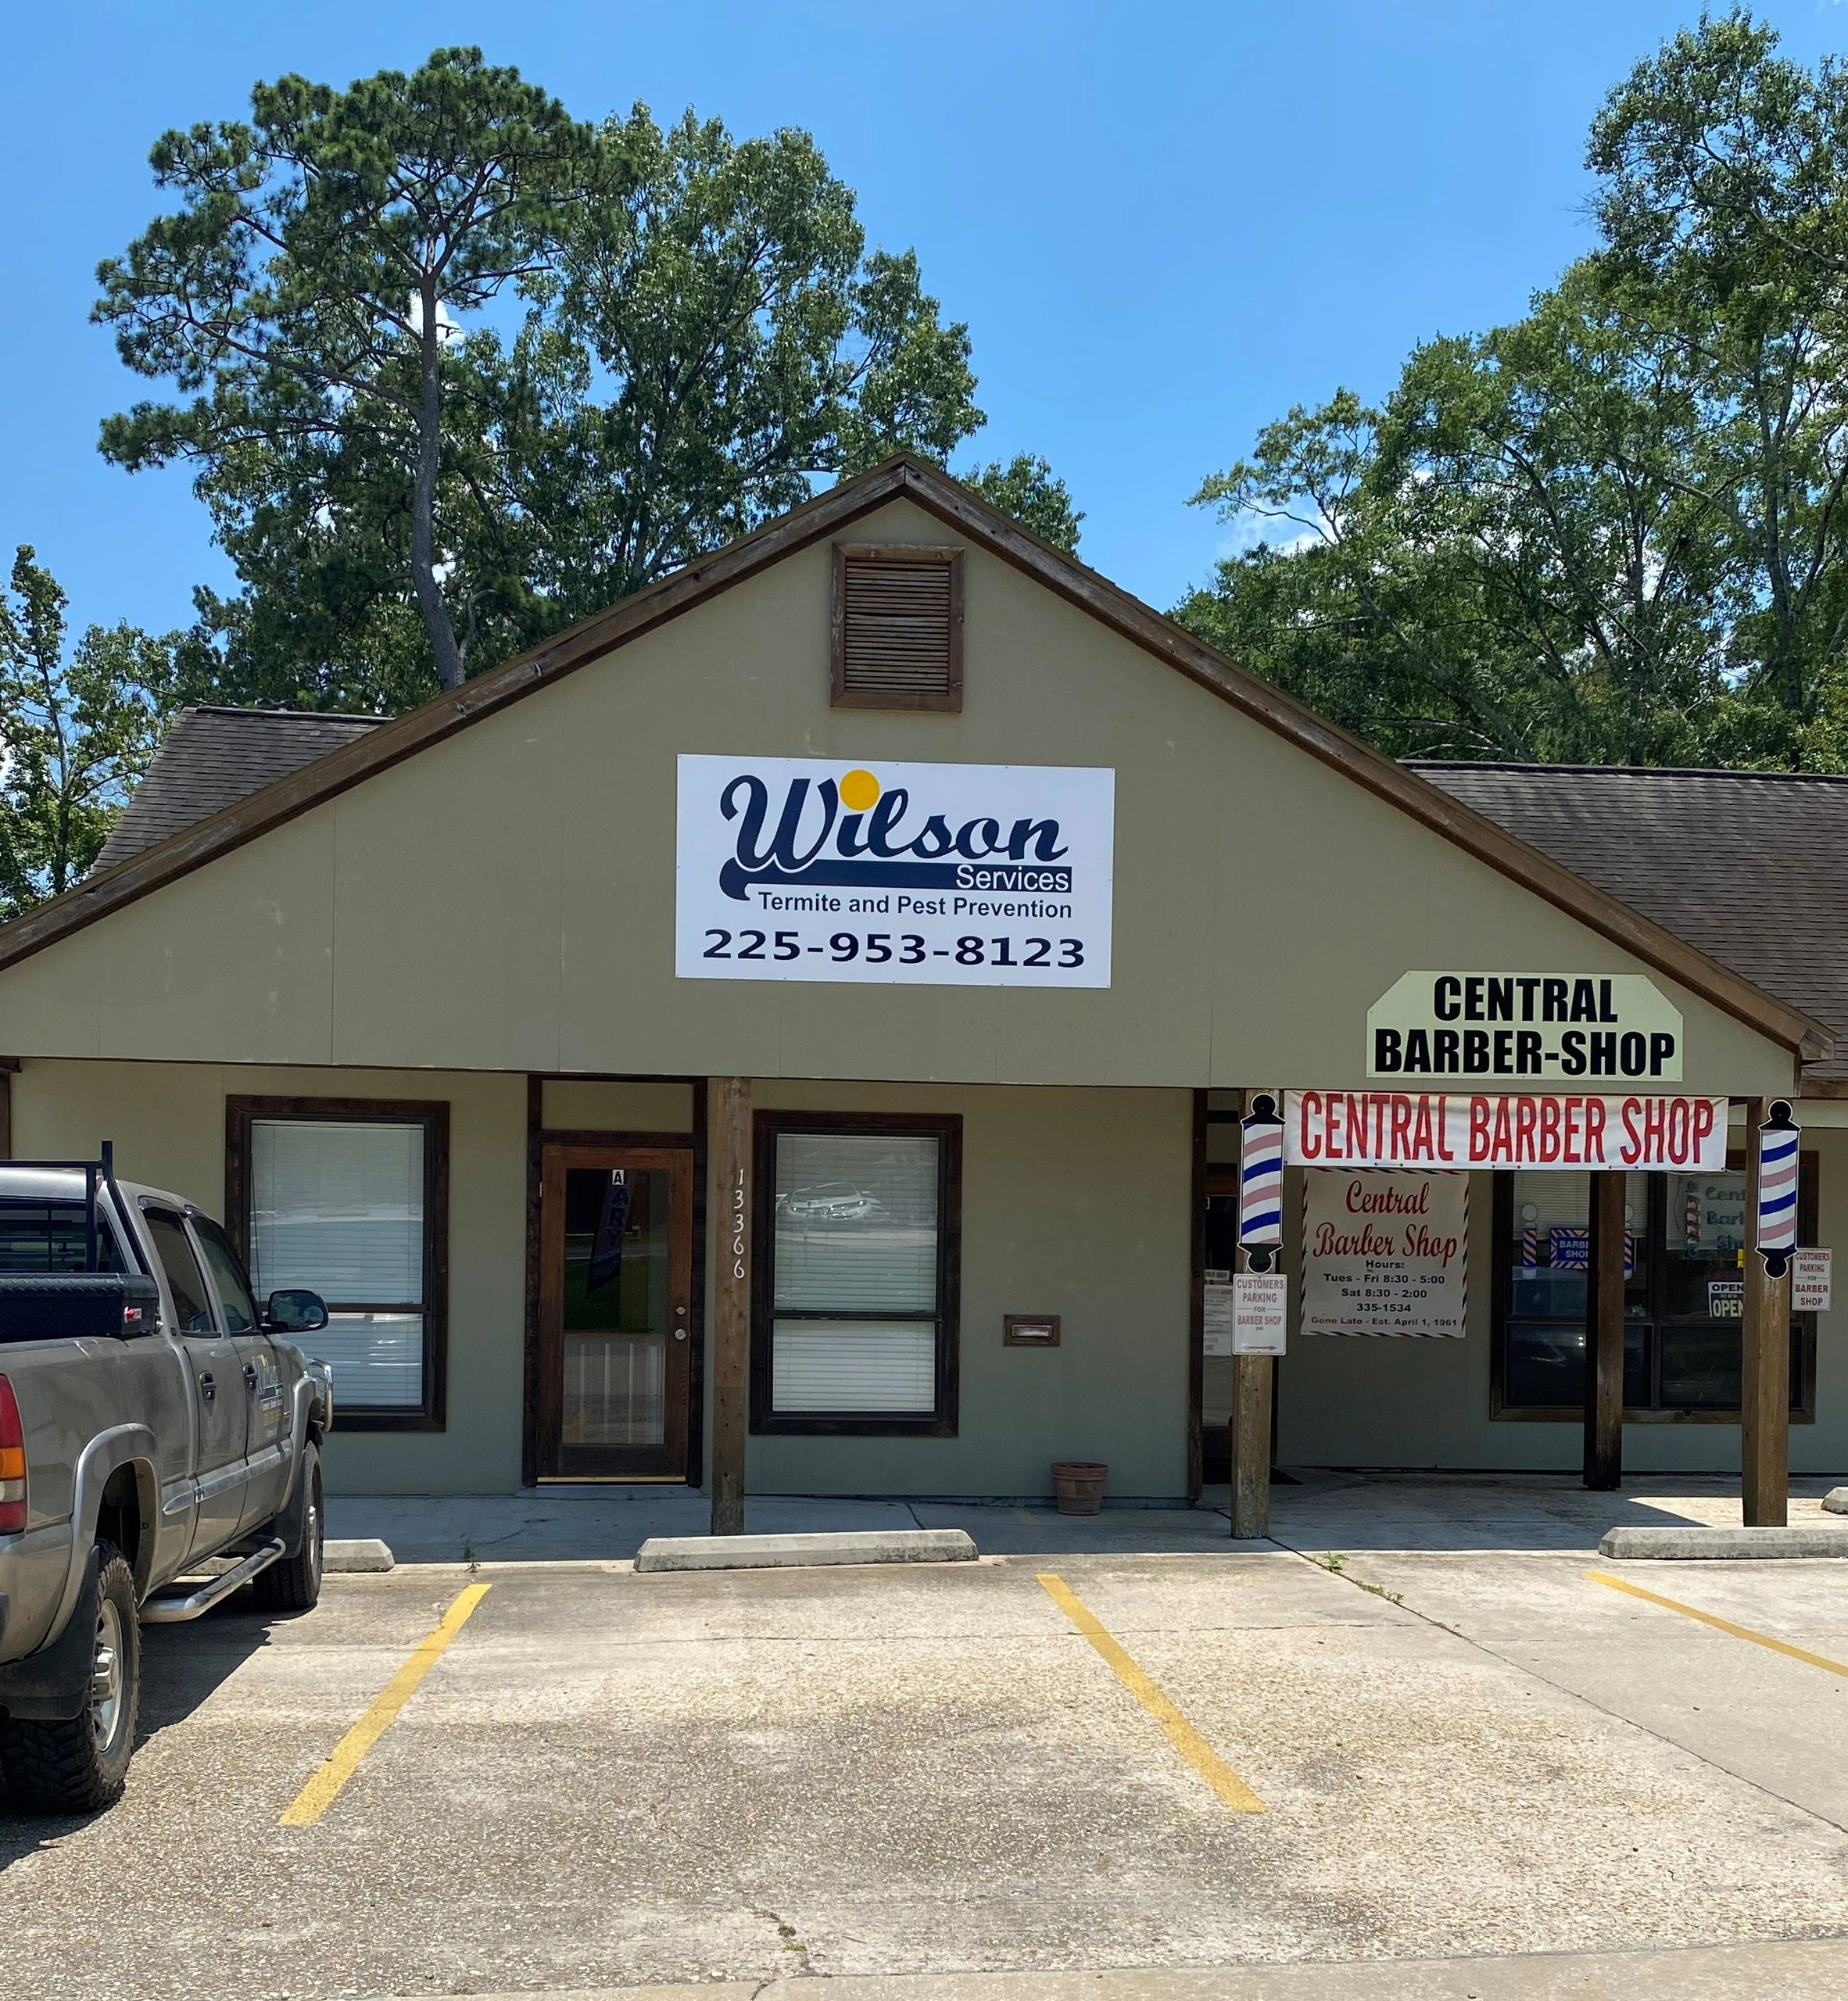 Wilson Services is located at 13366 Hooper Road, Baton Rouge, LA 70818